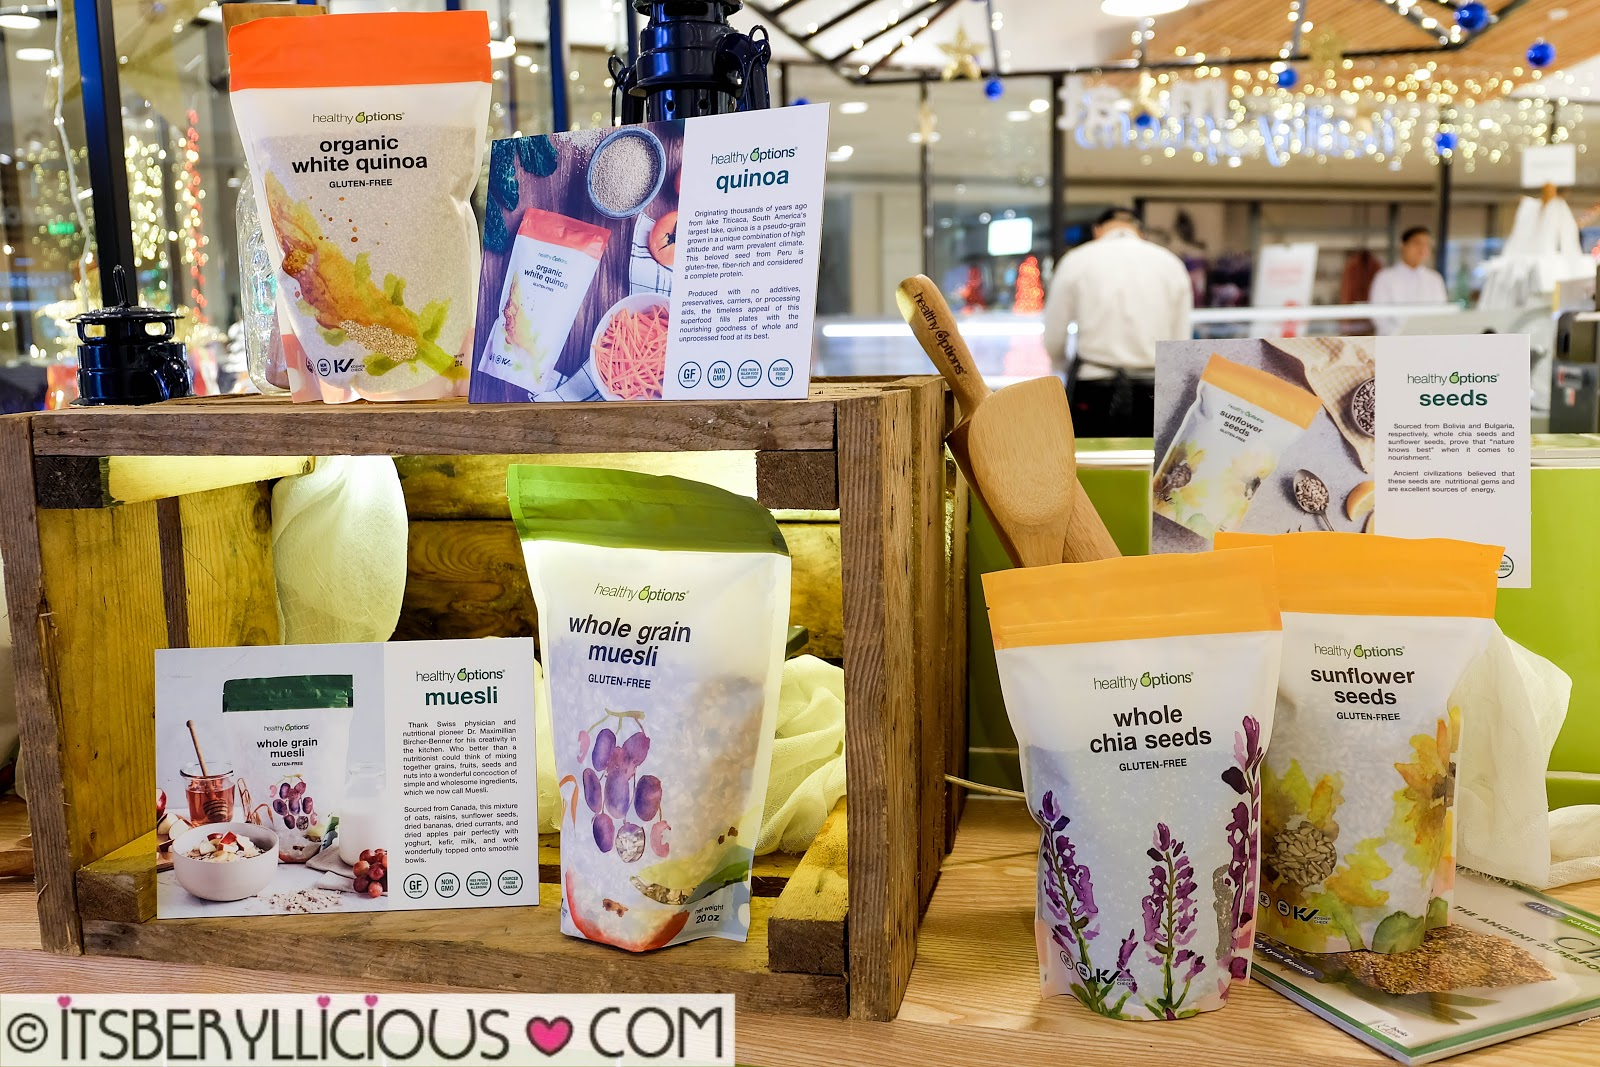 Light Up Your Christmas with Healthy Options 2017 Holiday Gift Collection   BERYLLICIOUS- A Food ...